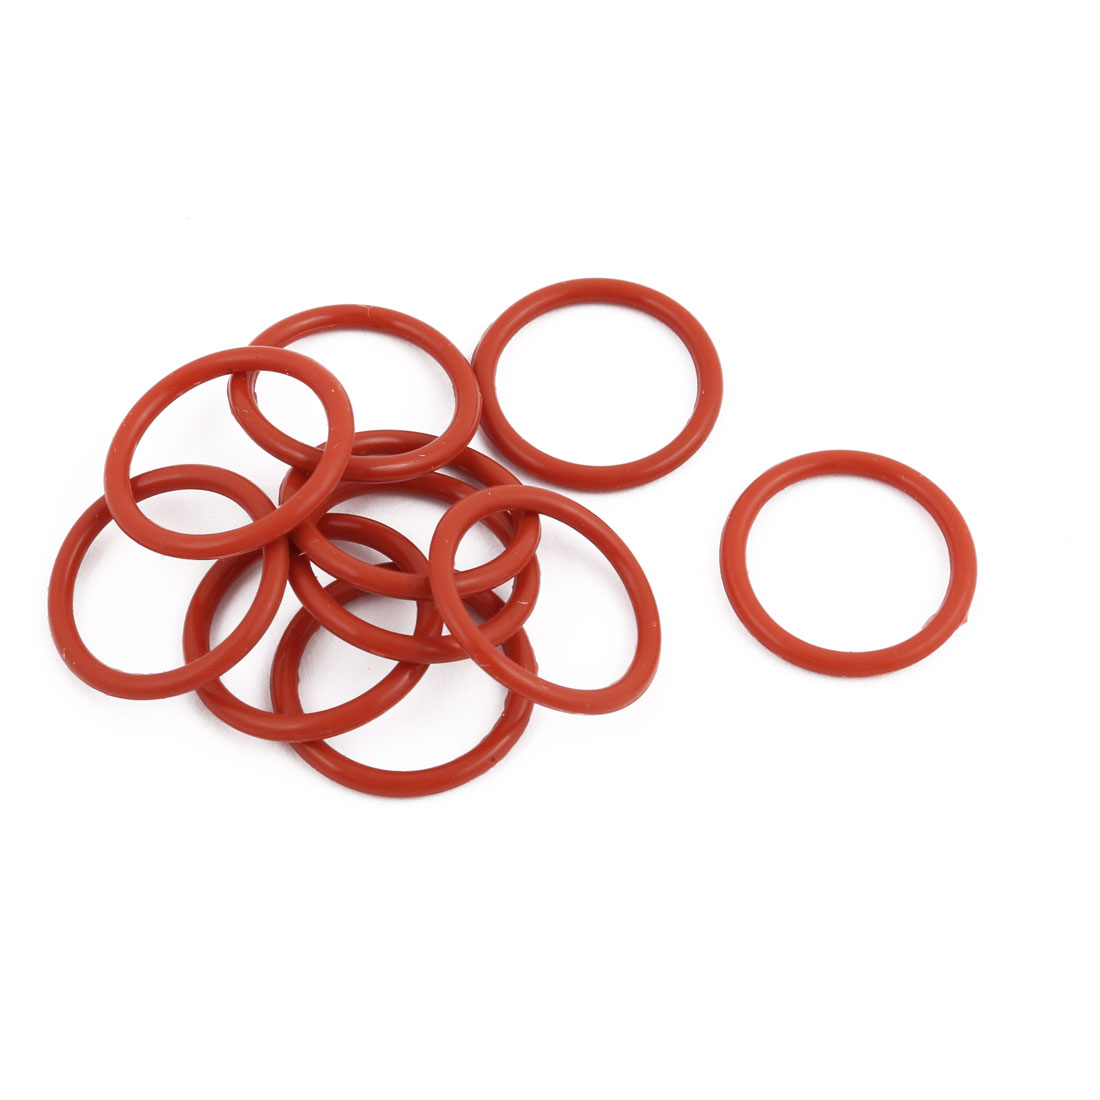 10Pcs Red Round Nitrile Butadiene Rubber NBR O-Ring 19mm OD 1.9mm Width